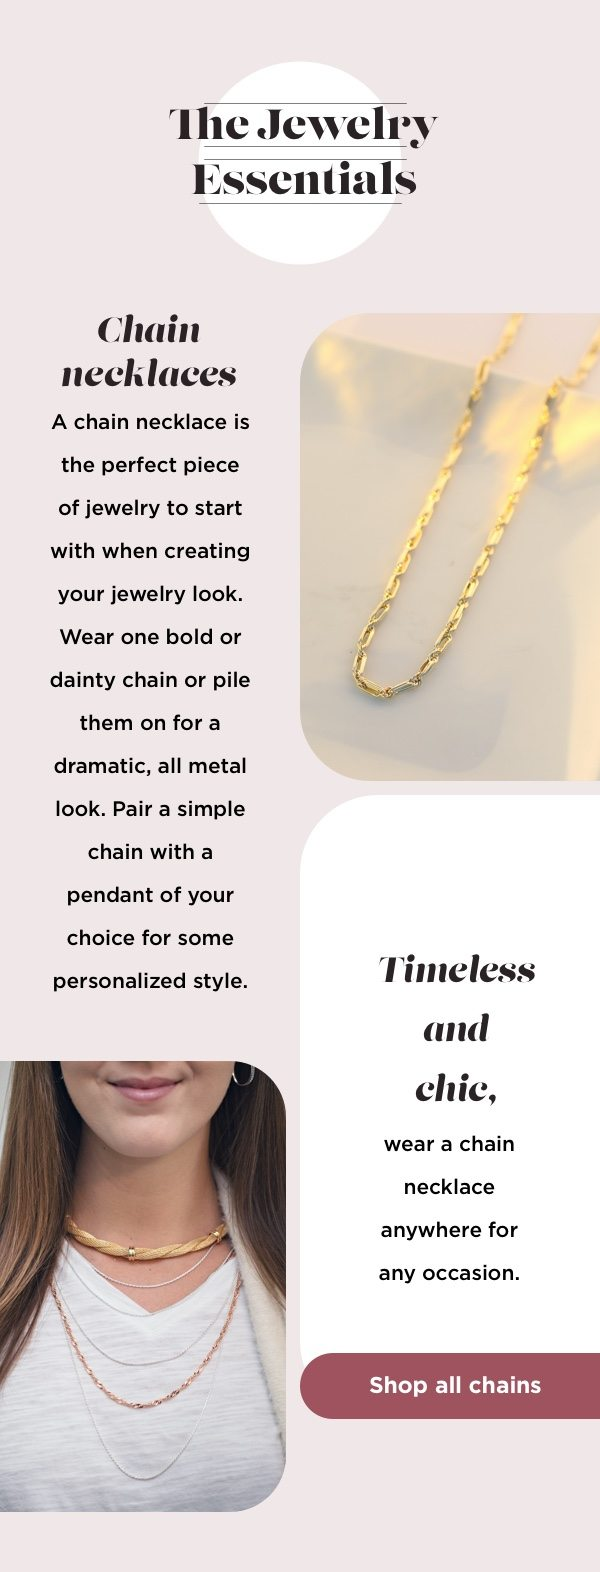 The Jewelry Essentials: Chain Necklaces